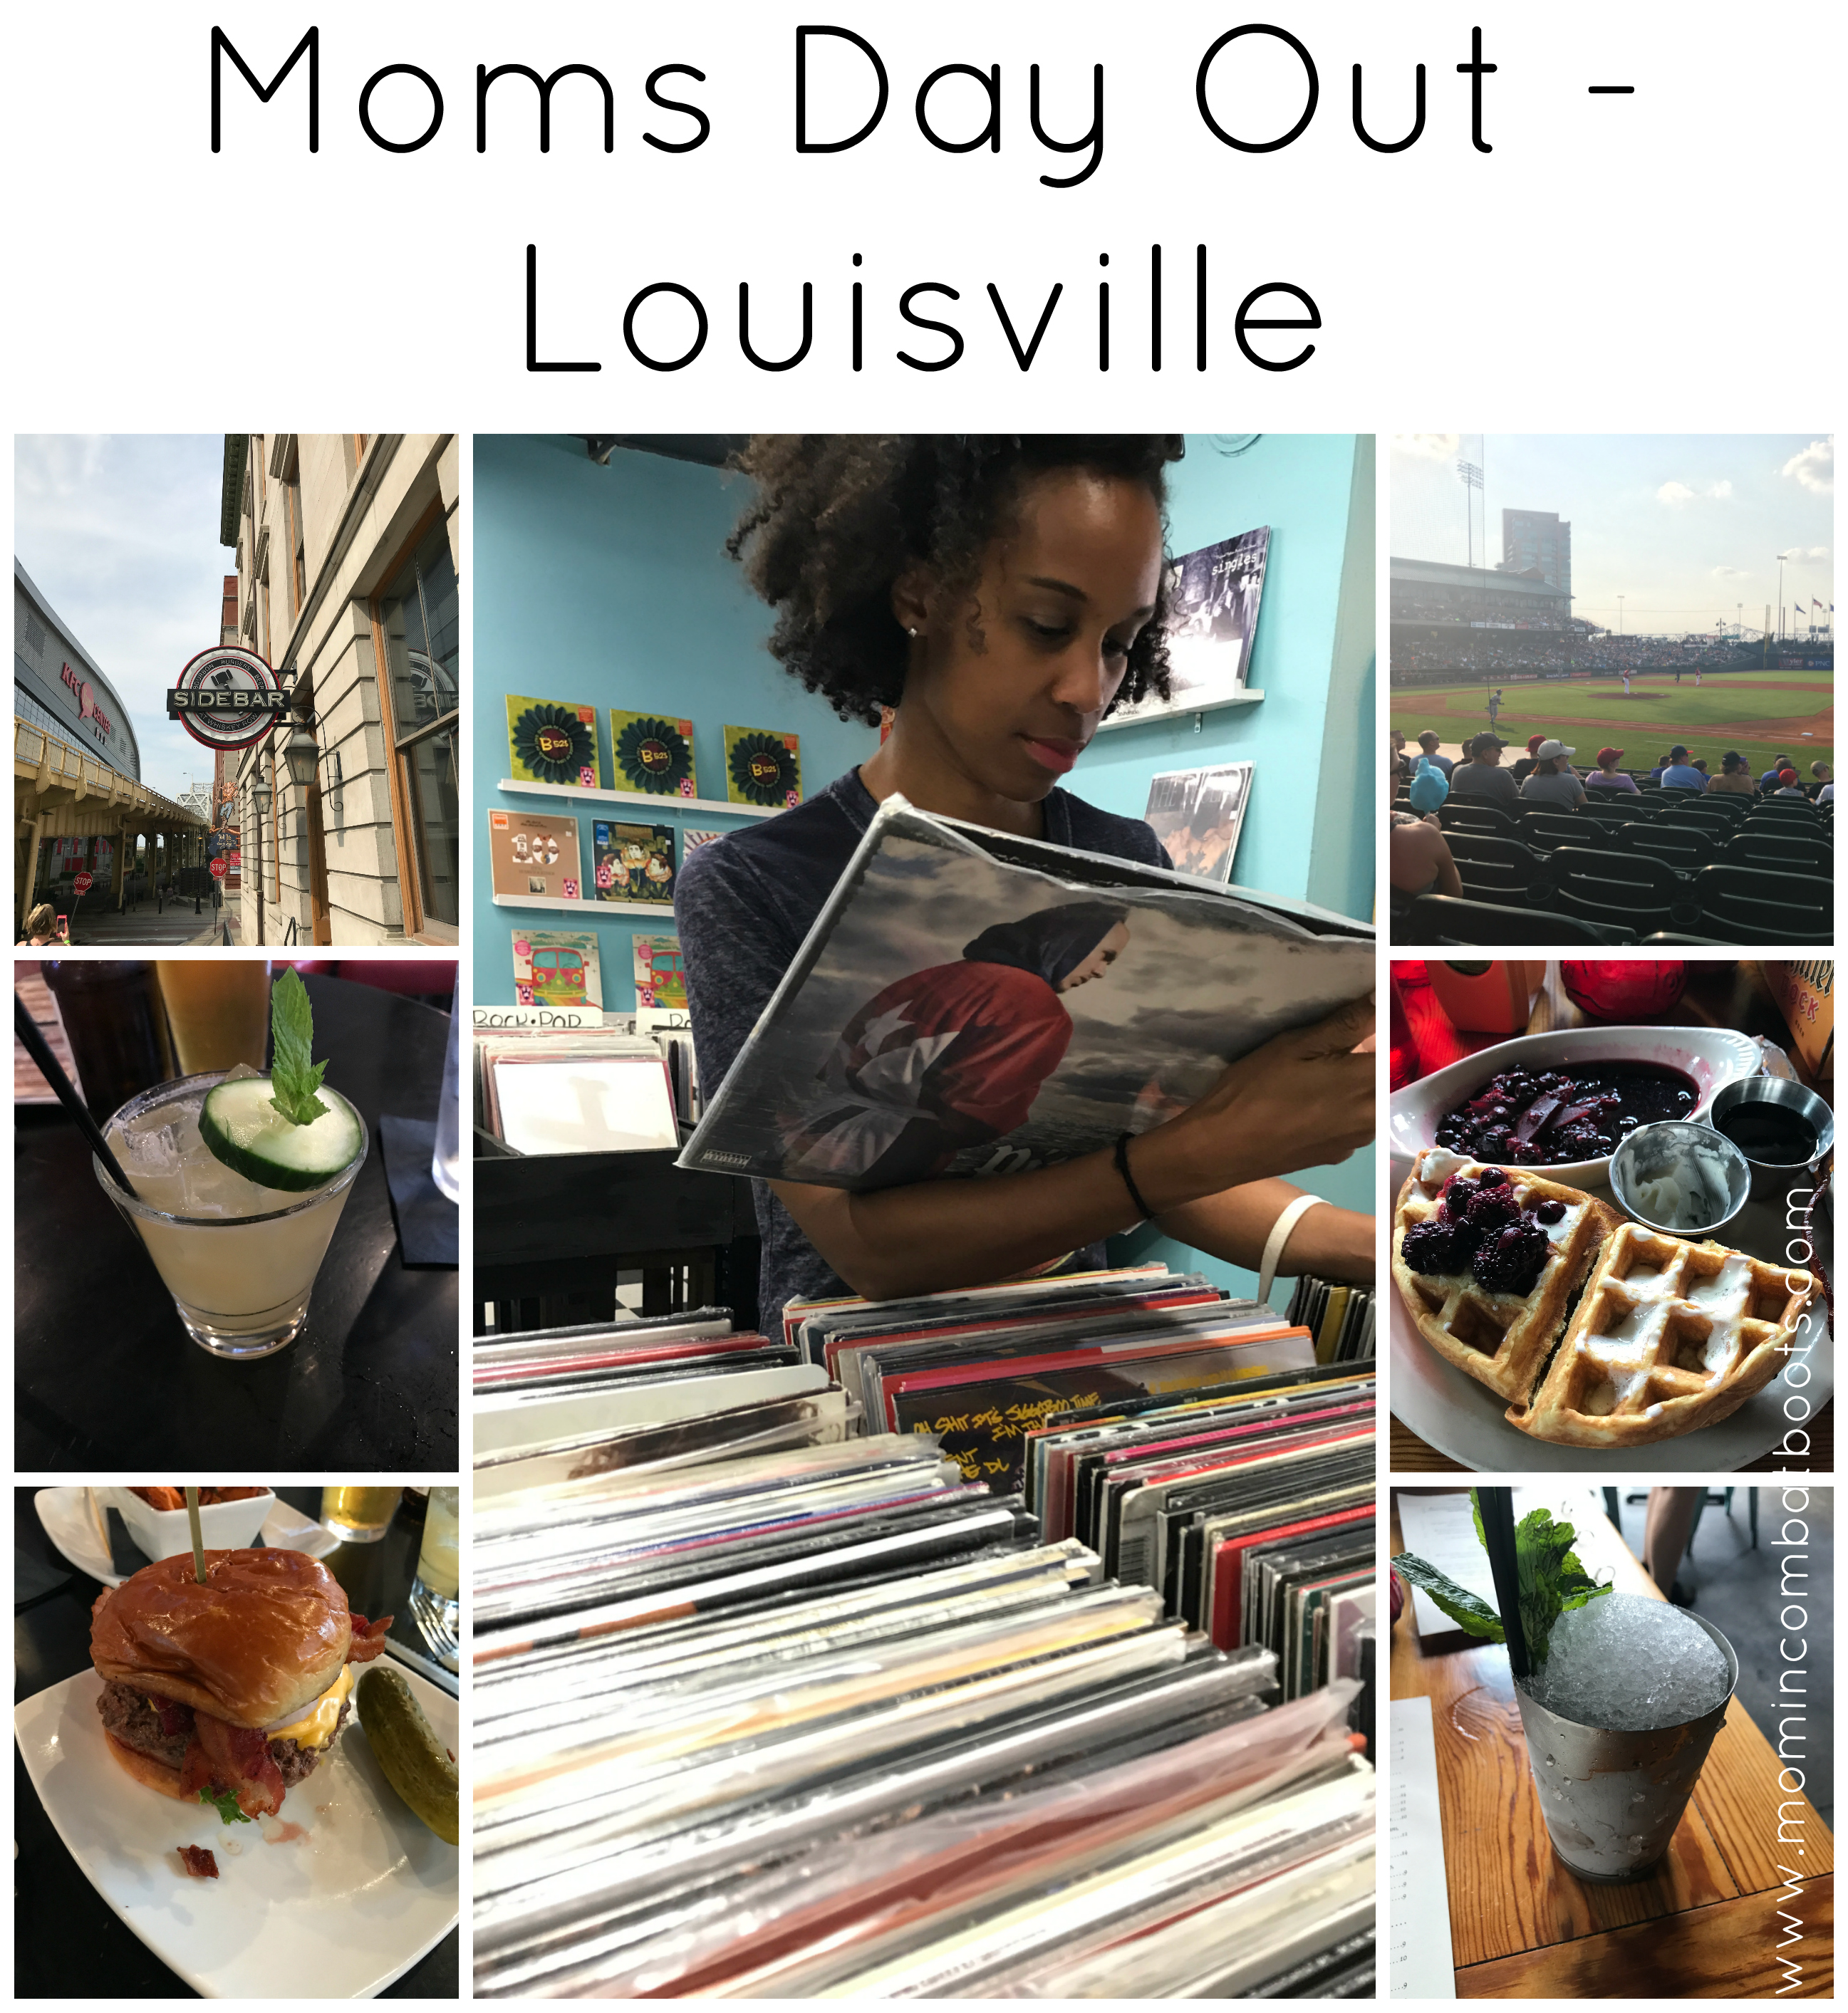 Moms day out Louisville